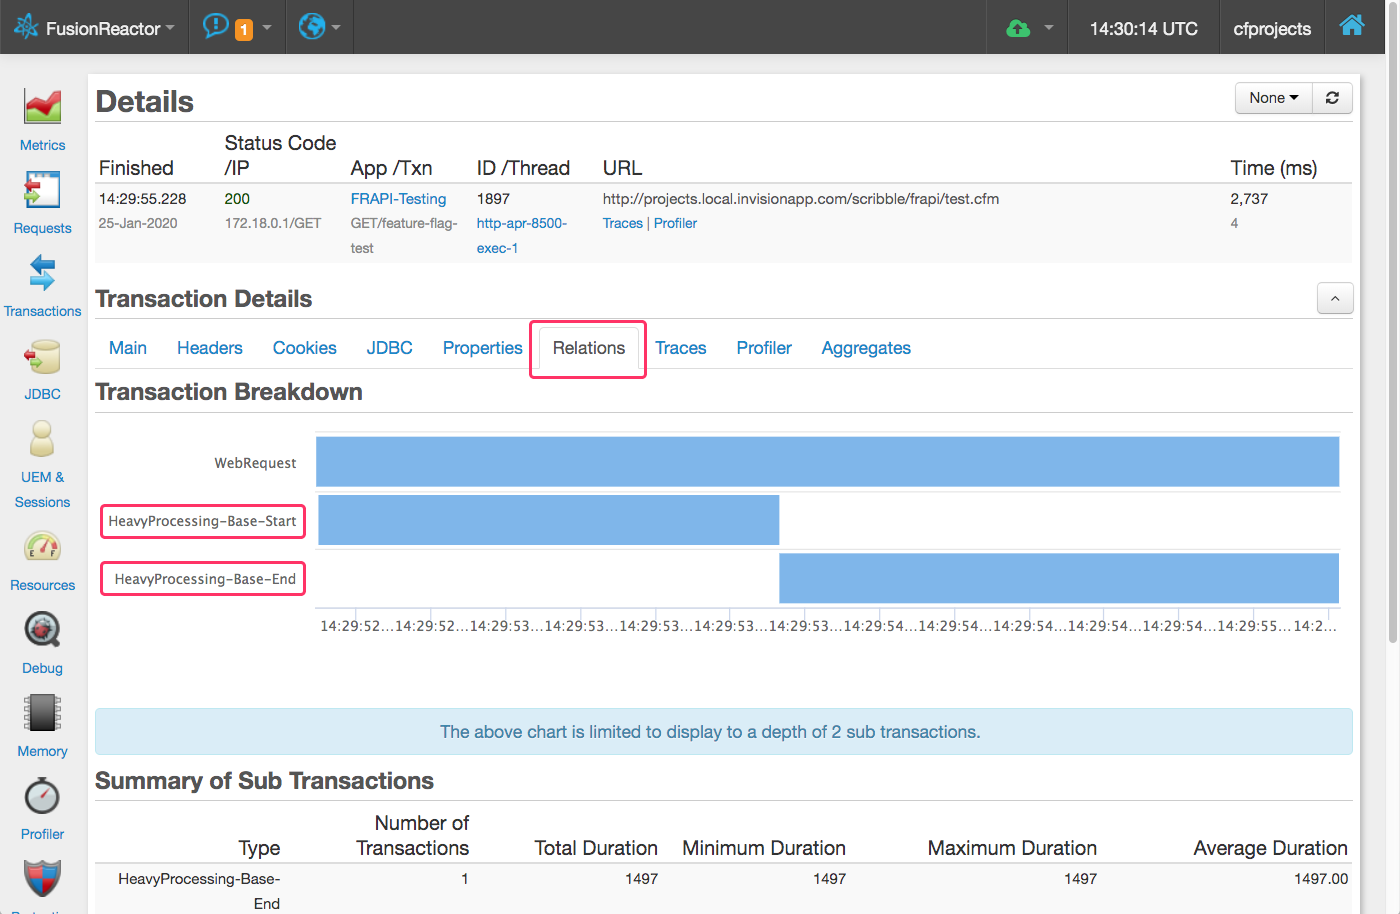 FusionReactor showing Relations transaction segmentation in Standalone dashboard.